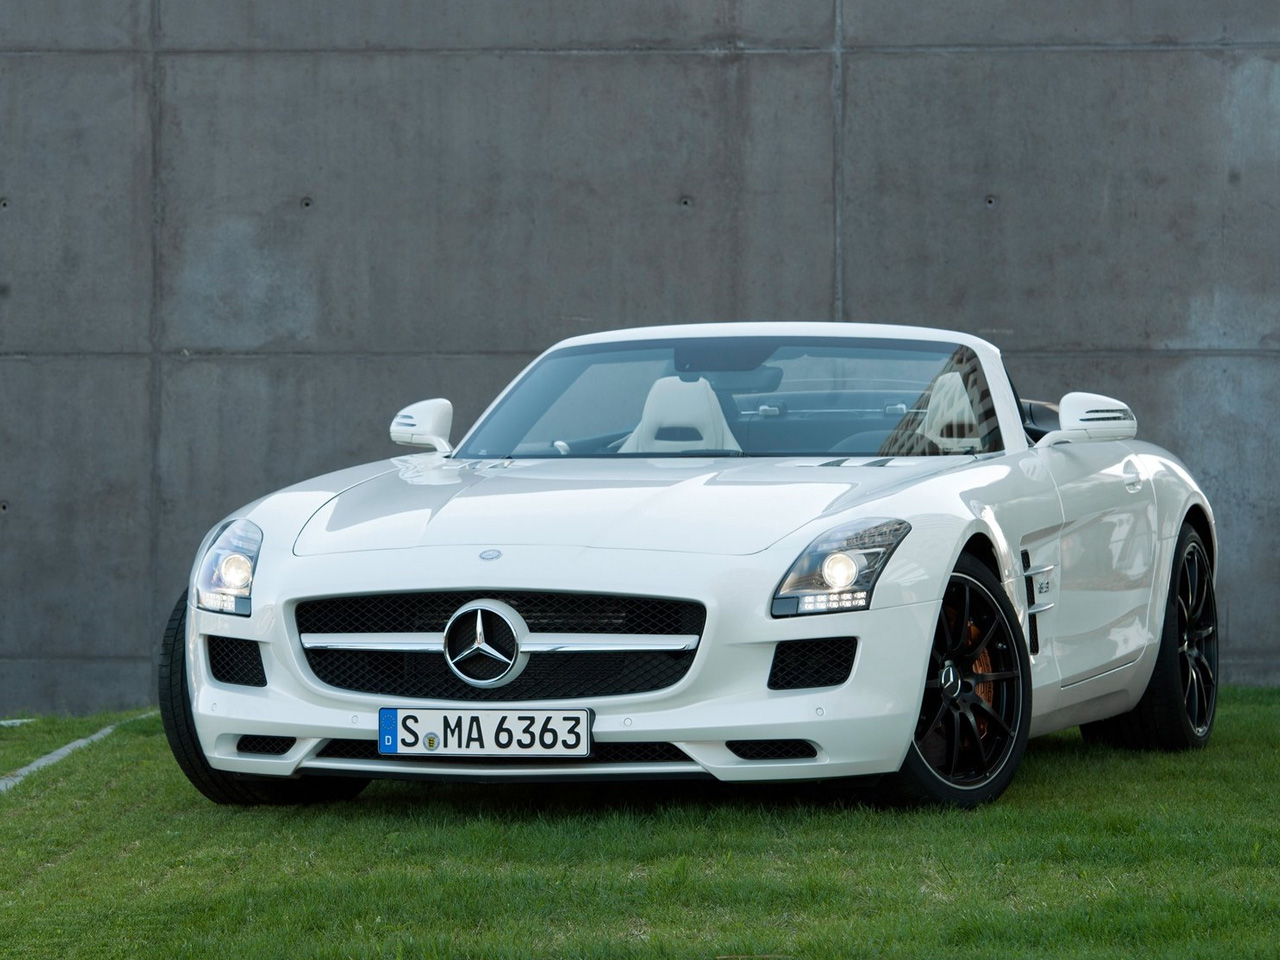 Mercedes Benz Sls 6 3 Amg 2012 Car Information News